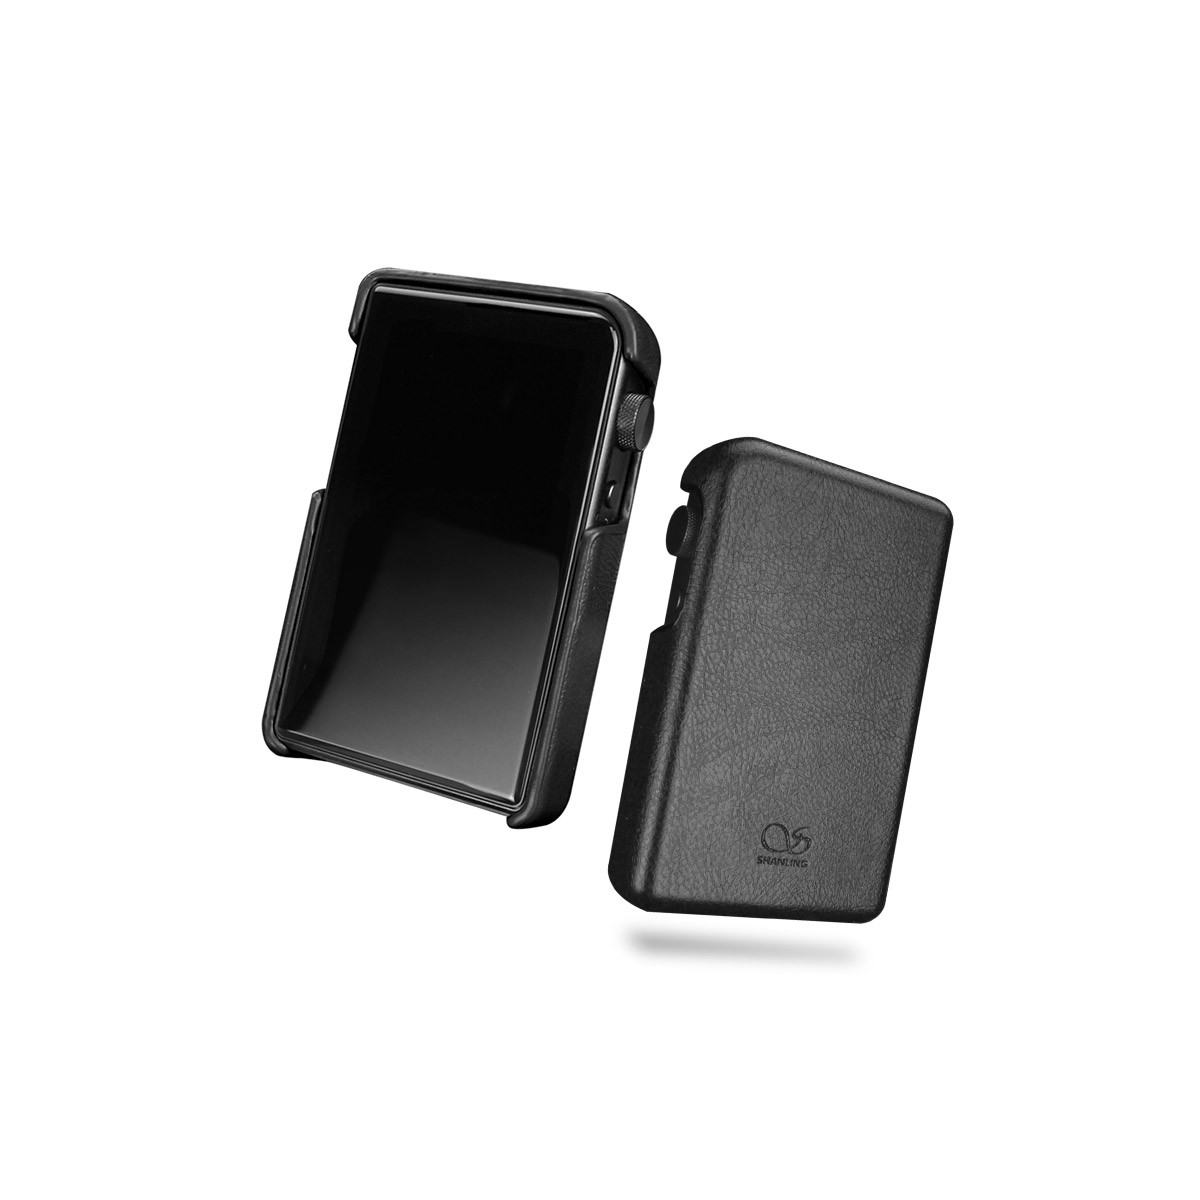 SHANLING Leatherette Case for Shanling M2S DAP Black